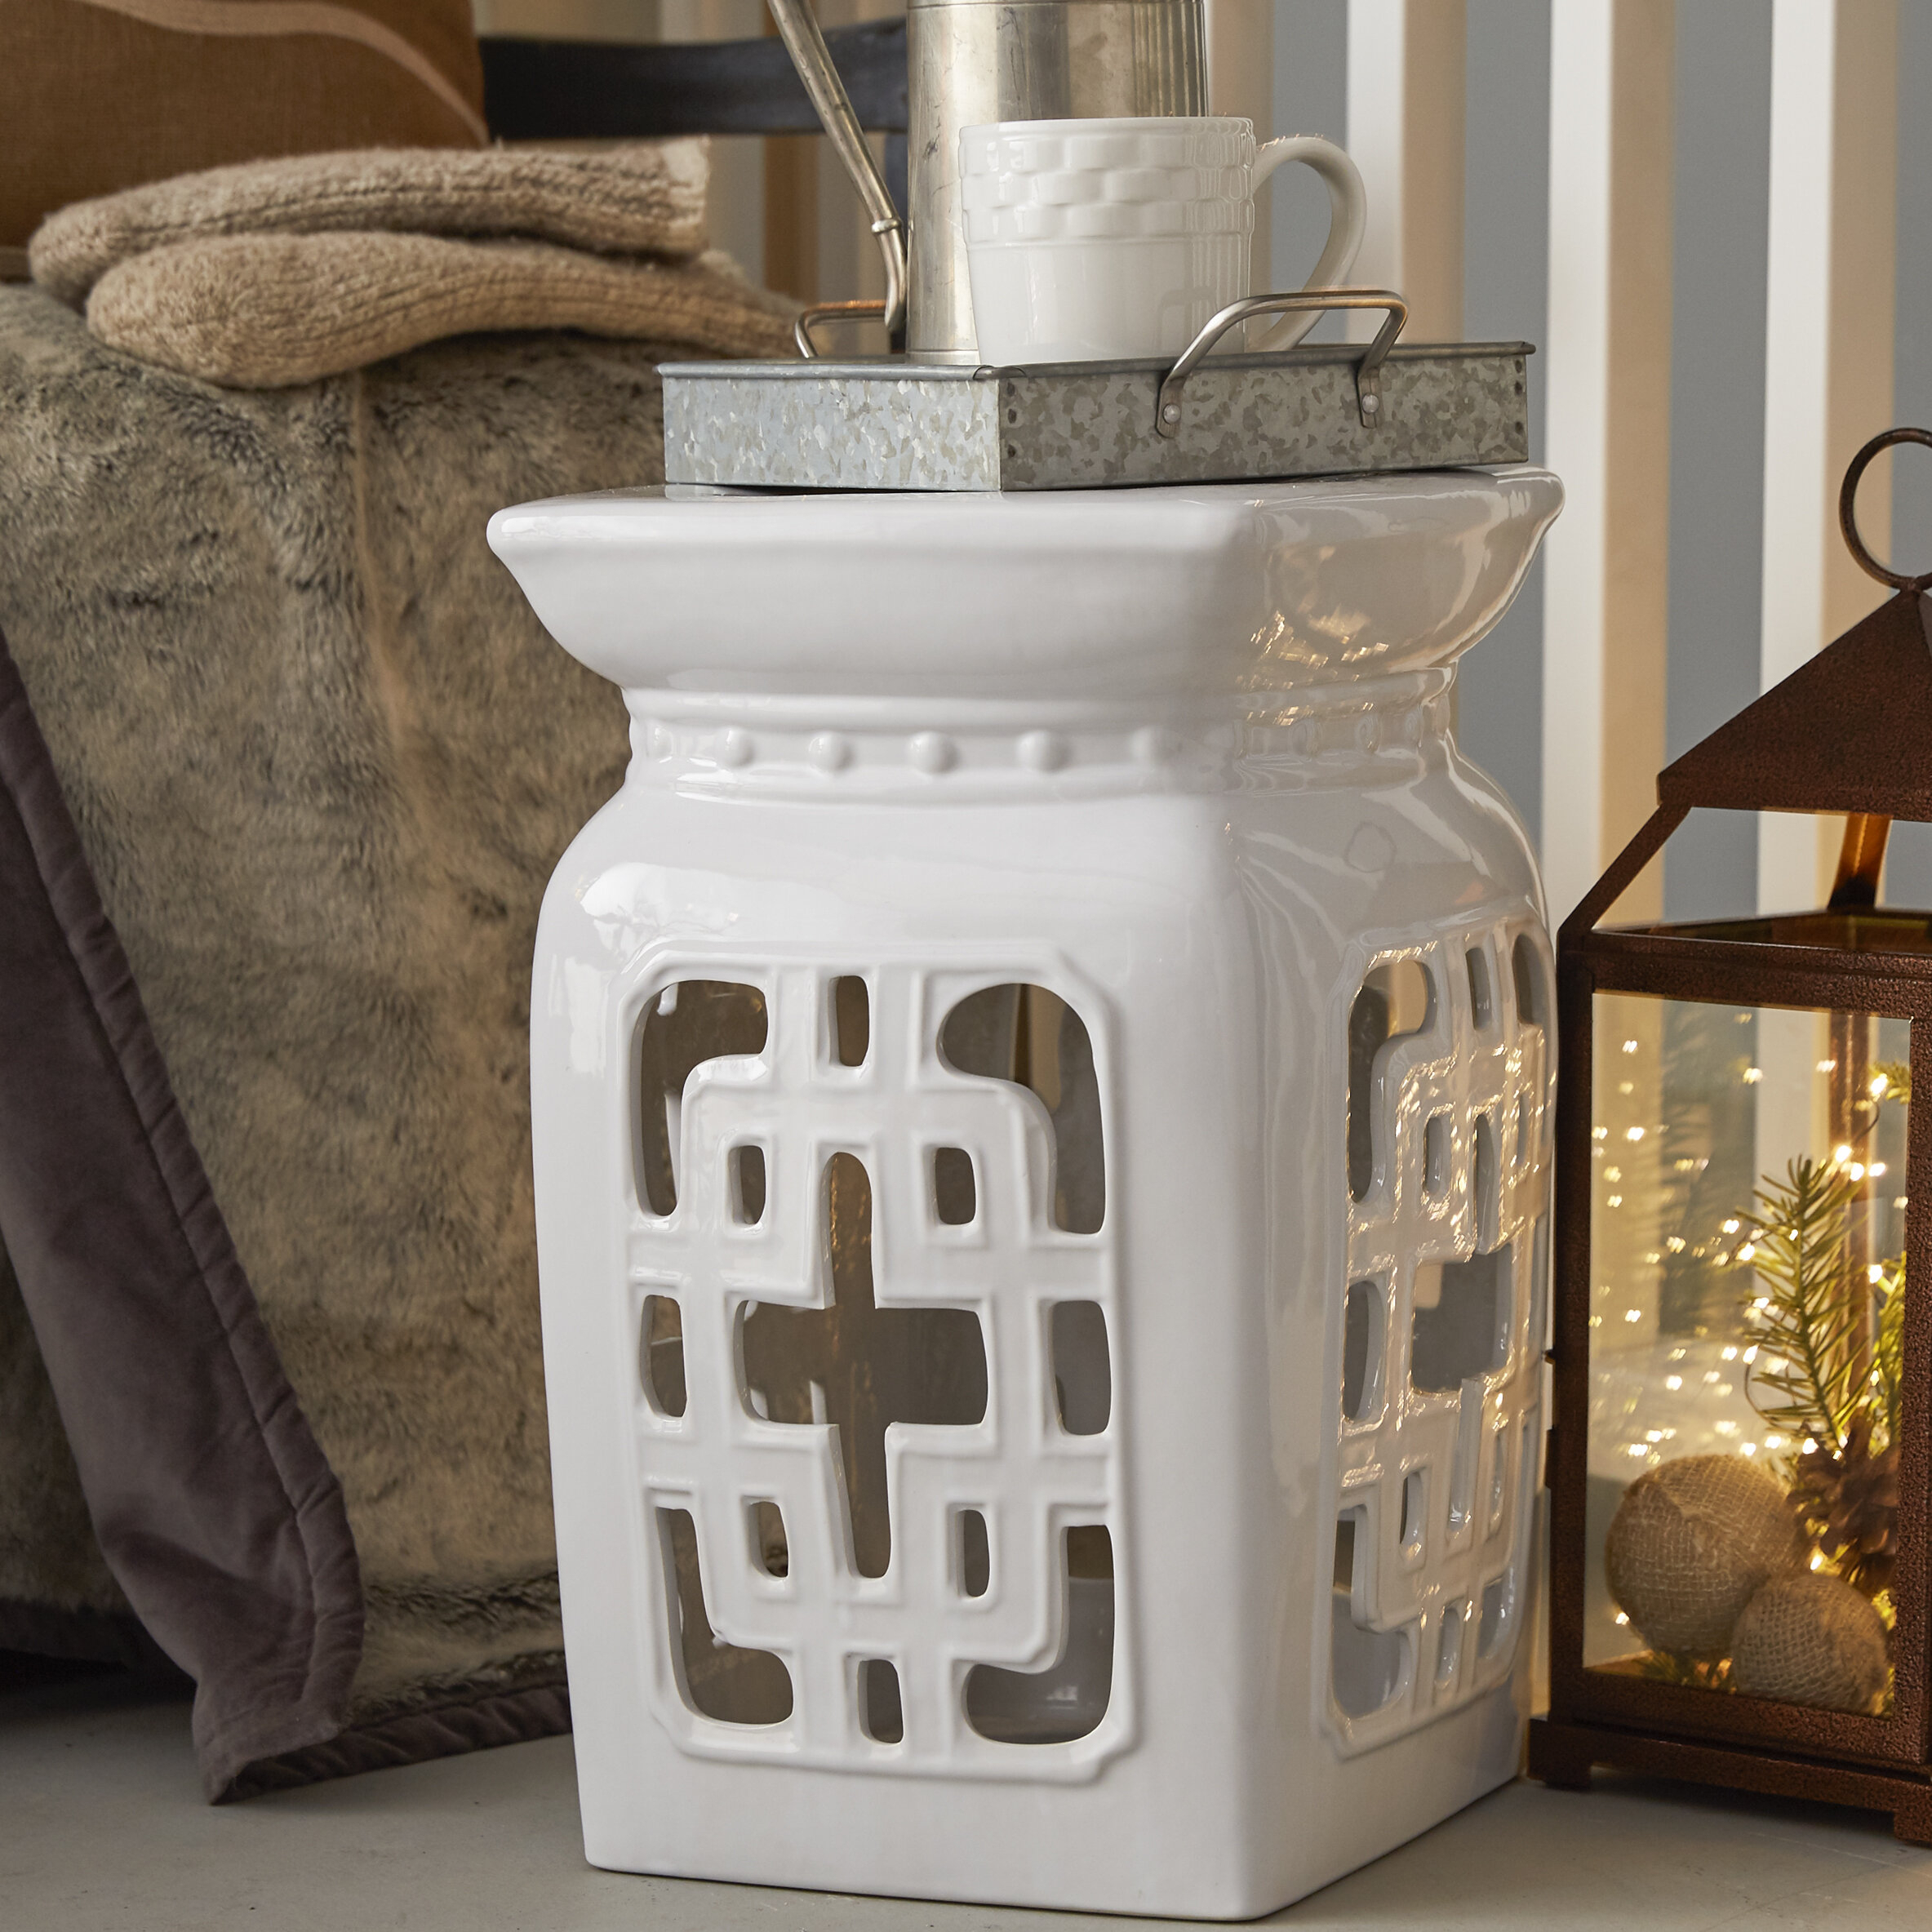 Ceramic White Garden Stools You'Ll Love In 2020 | Wayfair Pertaining To Middlet Owl Ceramic Garden Stools (View 10 of 25)